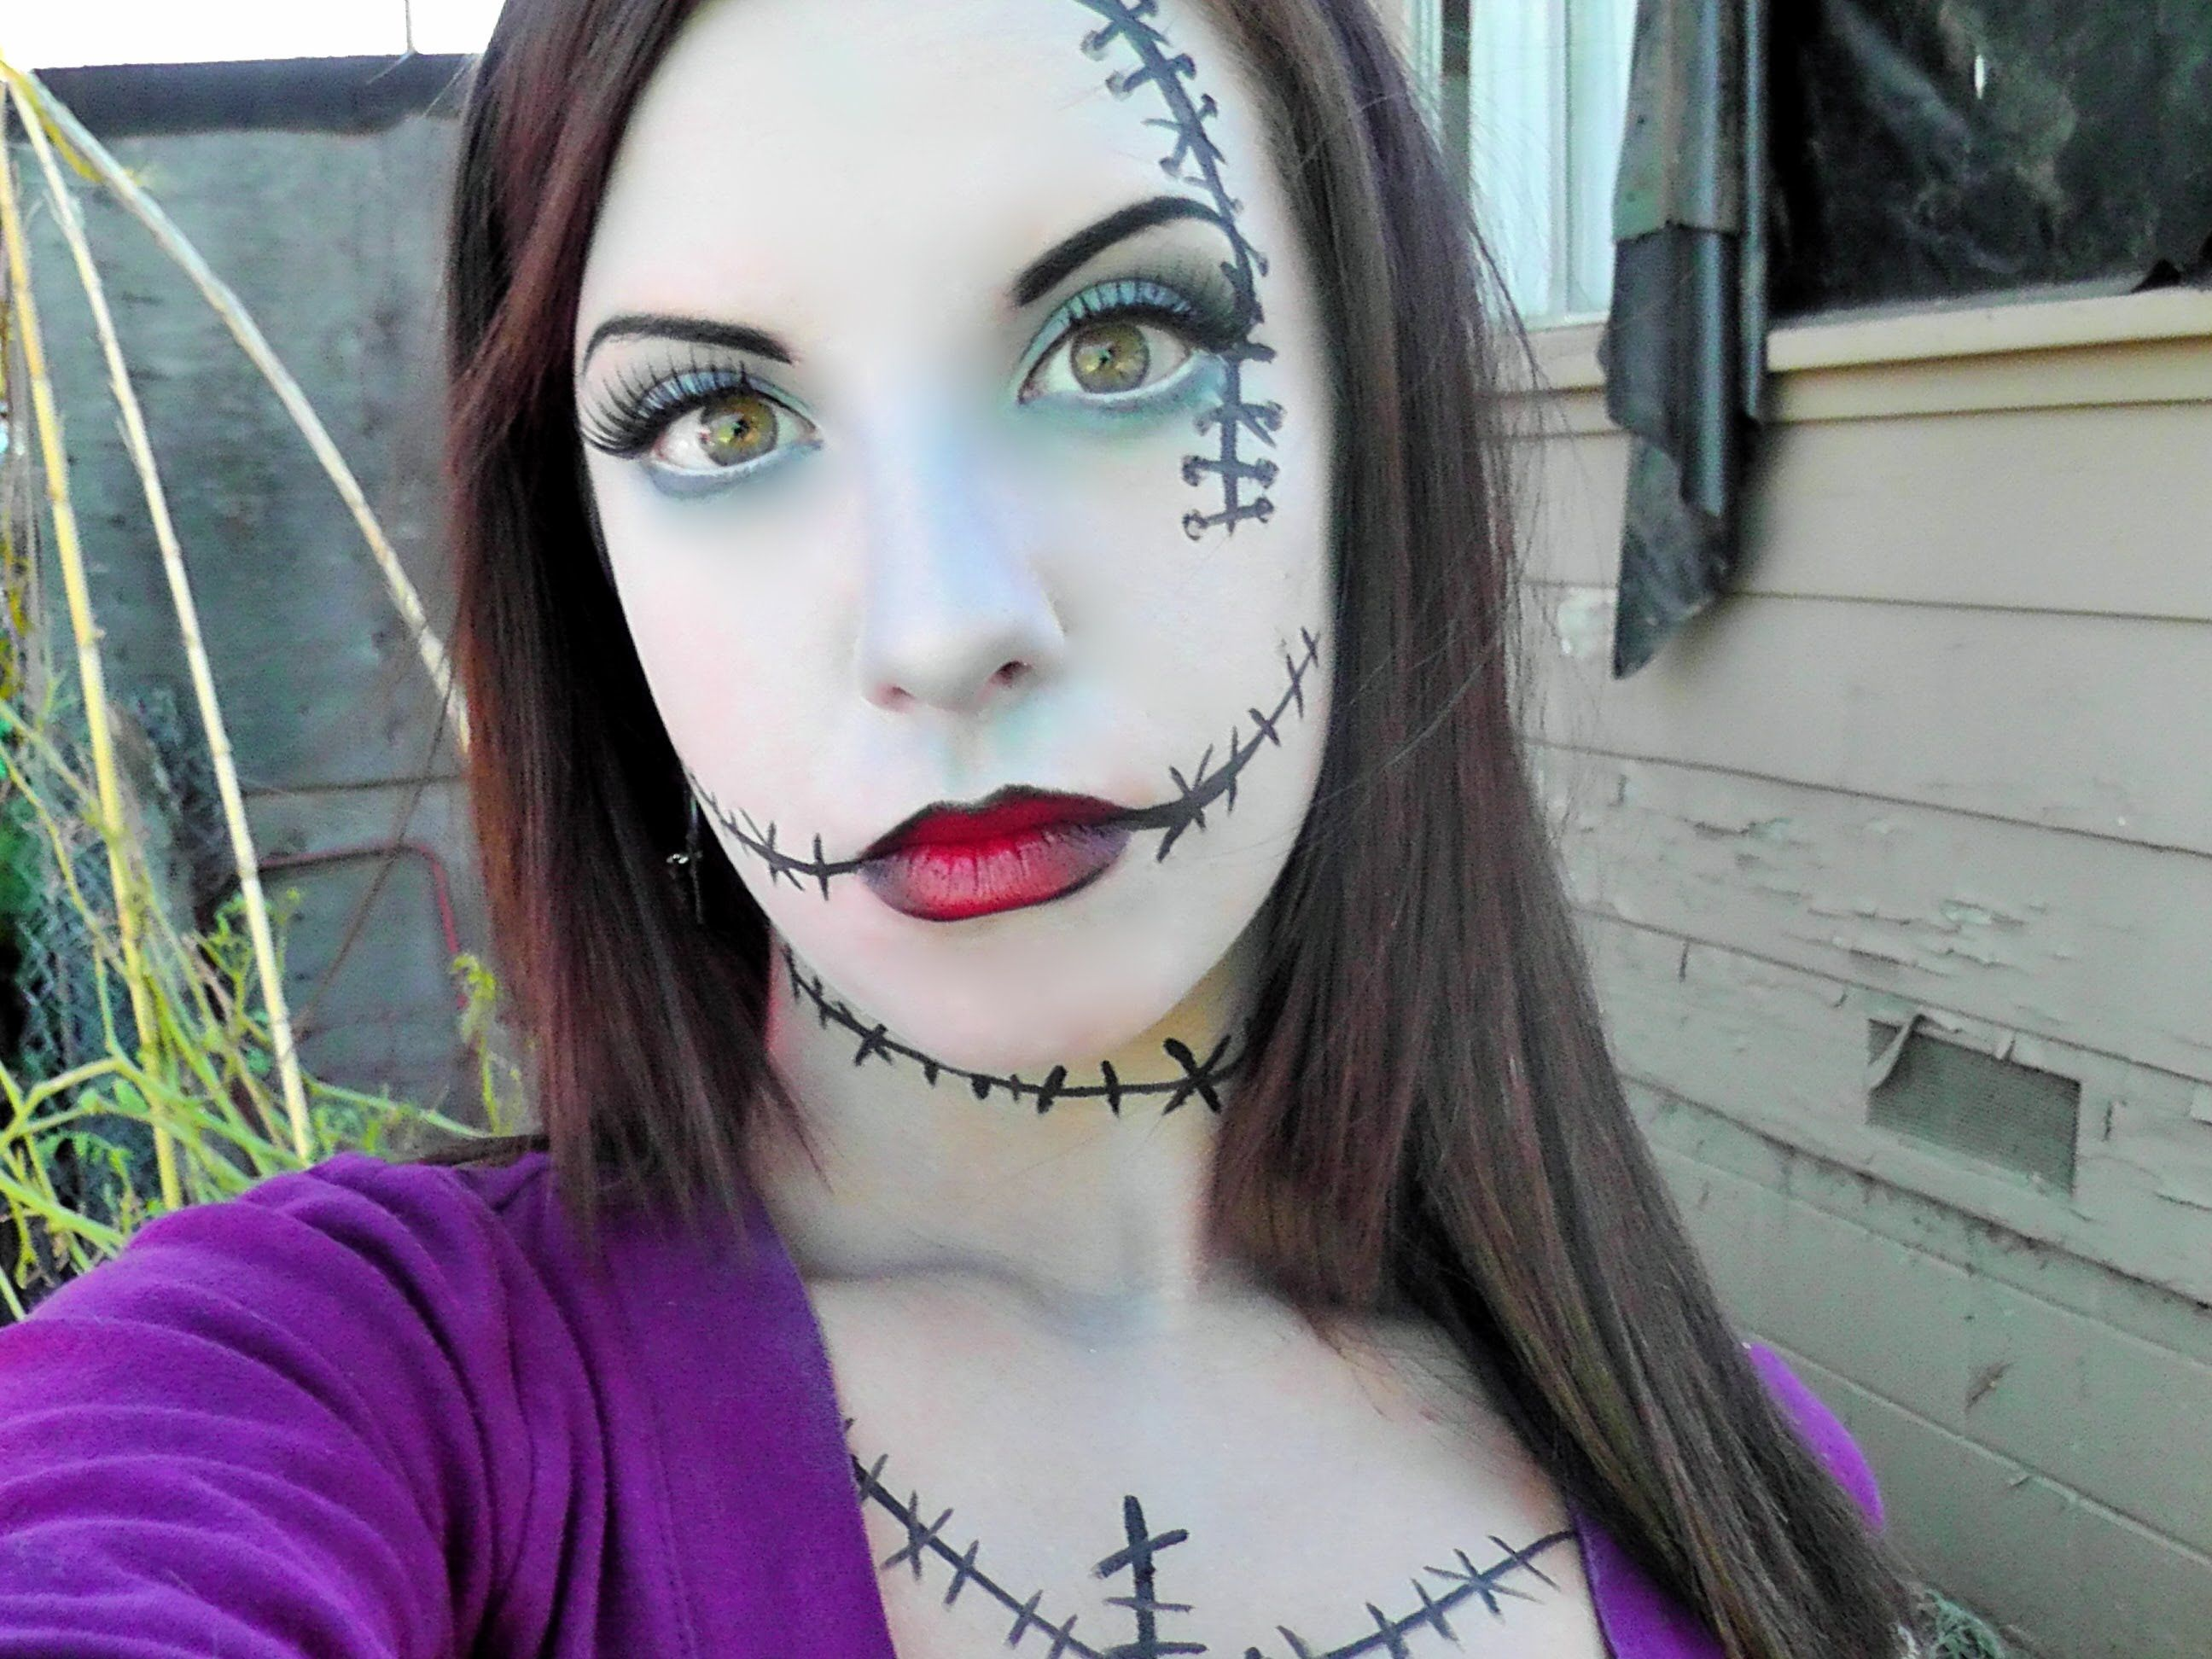 *Wearable* Sally Makeup. Not too cakey or intense